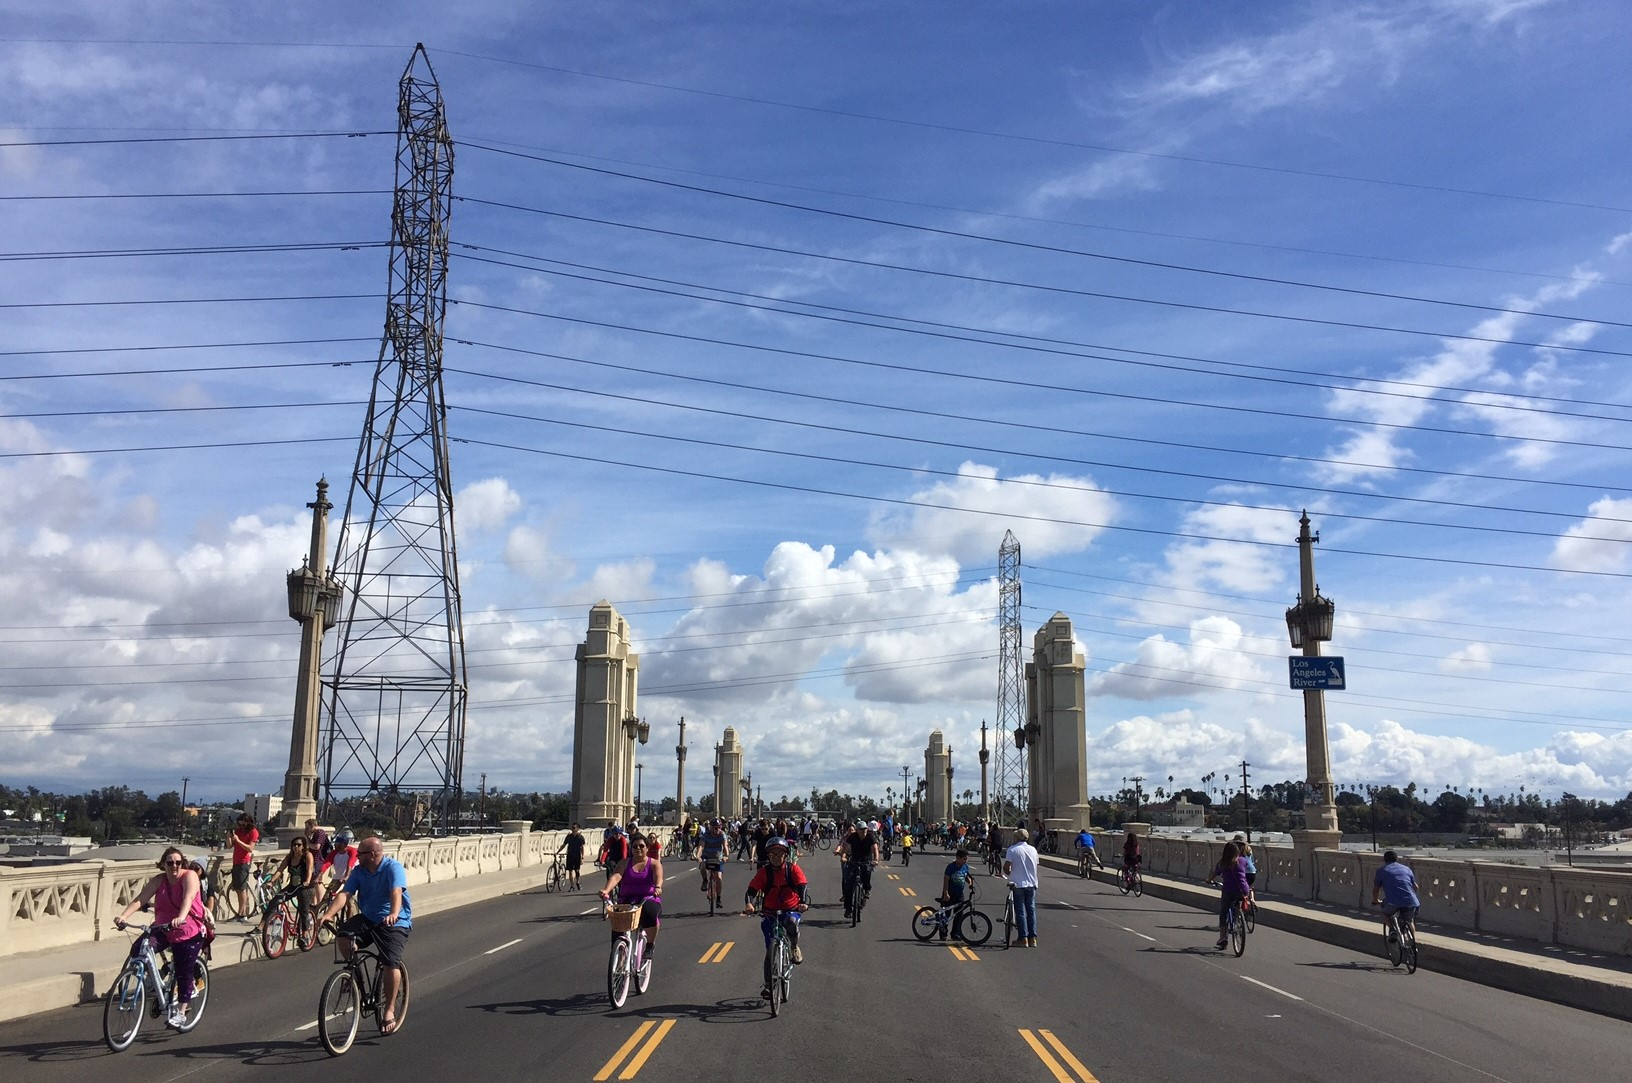 Yesterday's Heart of Los Angeles CicLAvia on the 4th Street Bridge over the L.A. River. Photos by Joe Linton/Streetsblog L.A.